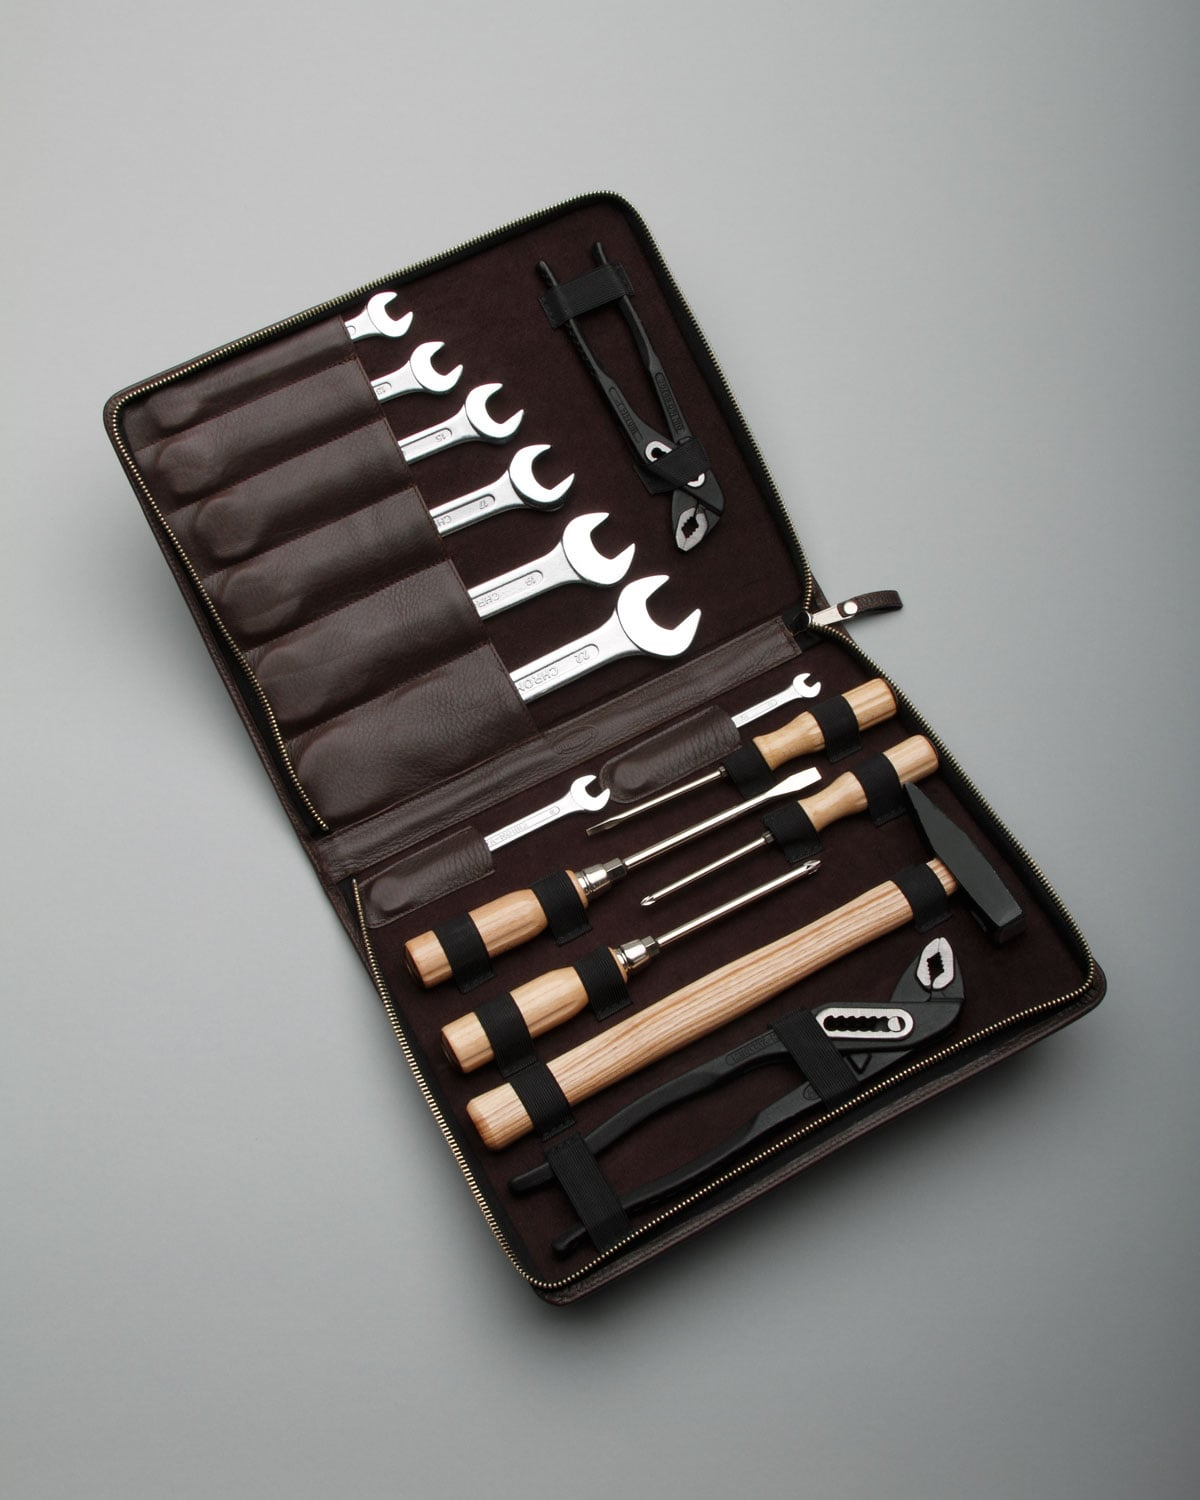 For the metro man in your life, this Lux Tool Kit ($500) is sure to appeal to his manly and uptown taste all at the same time. Who'd have thought tools could look so handsome?